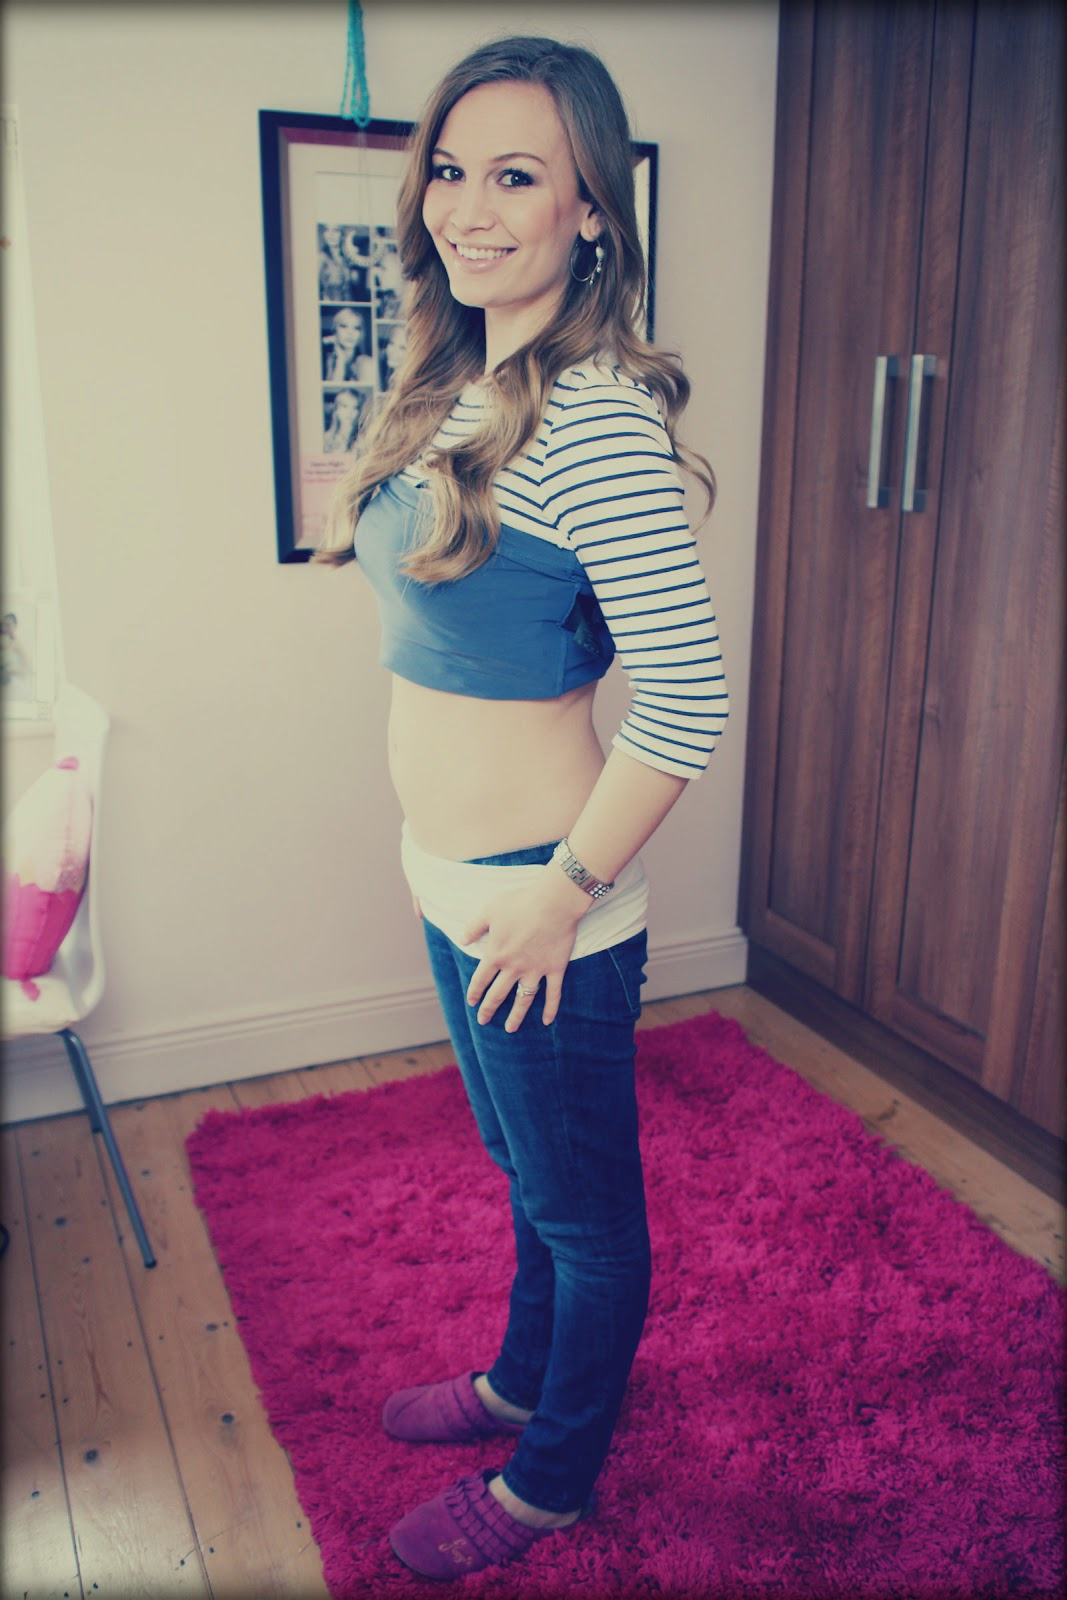 3 and a half weeks pregnant